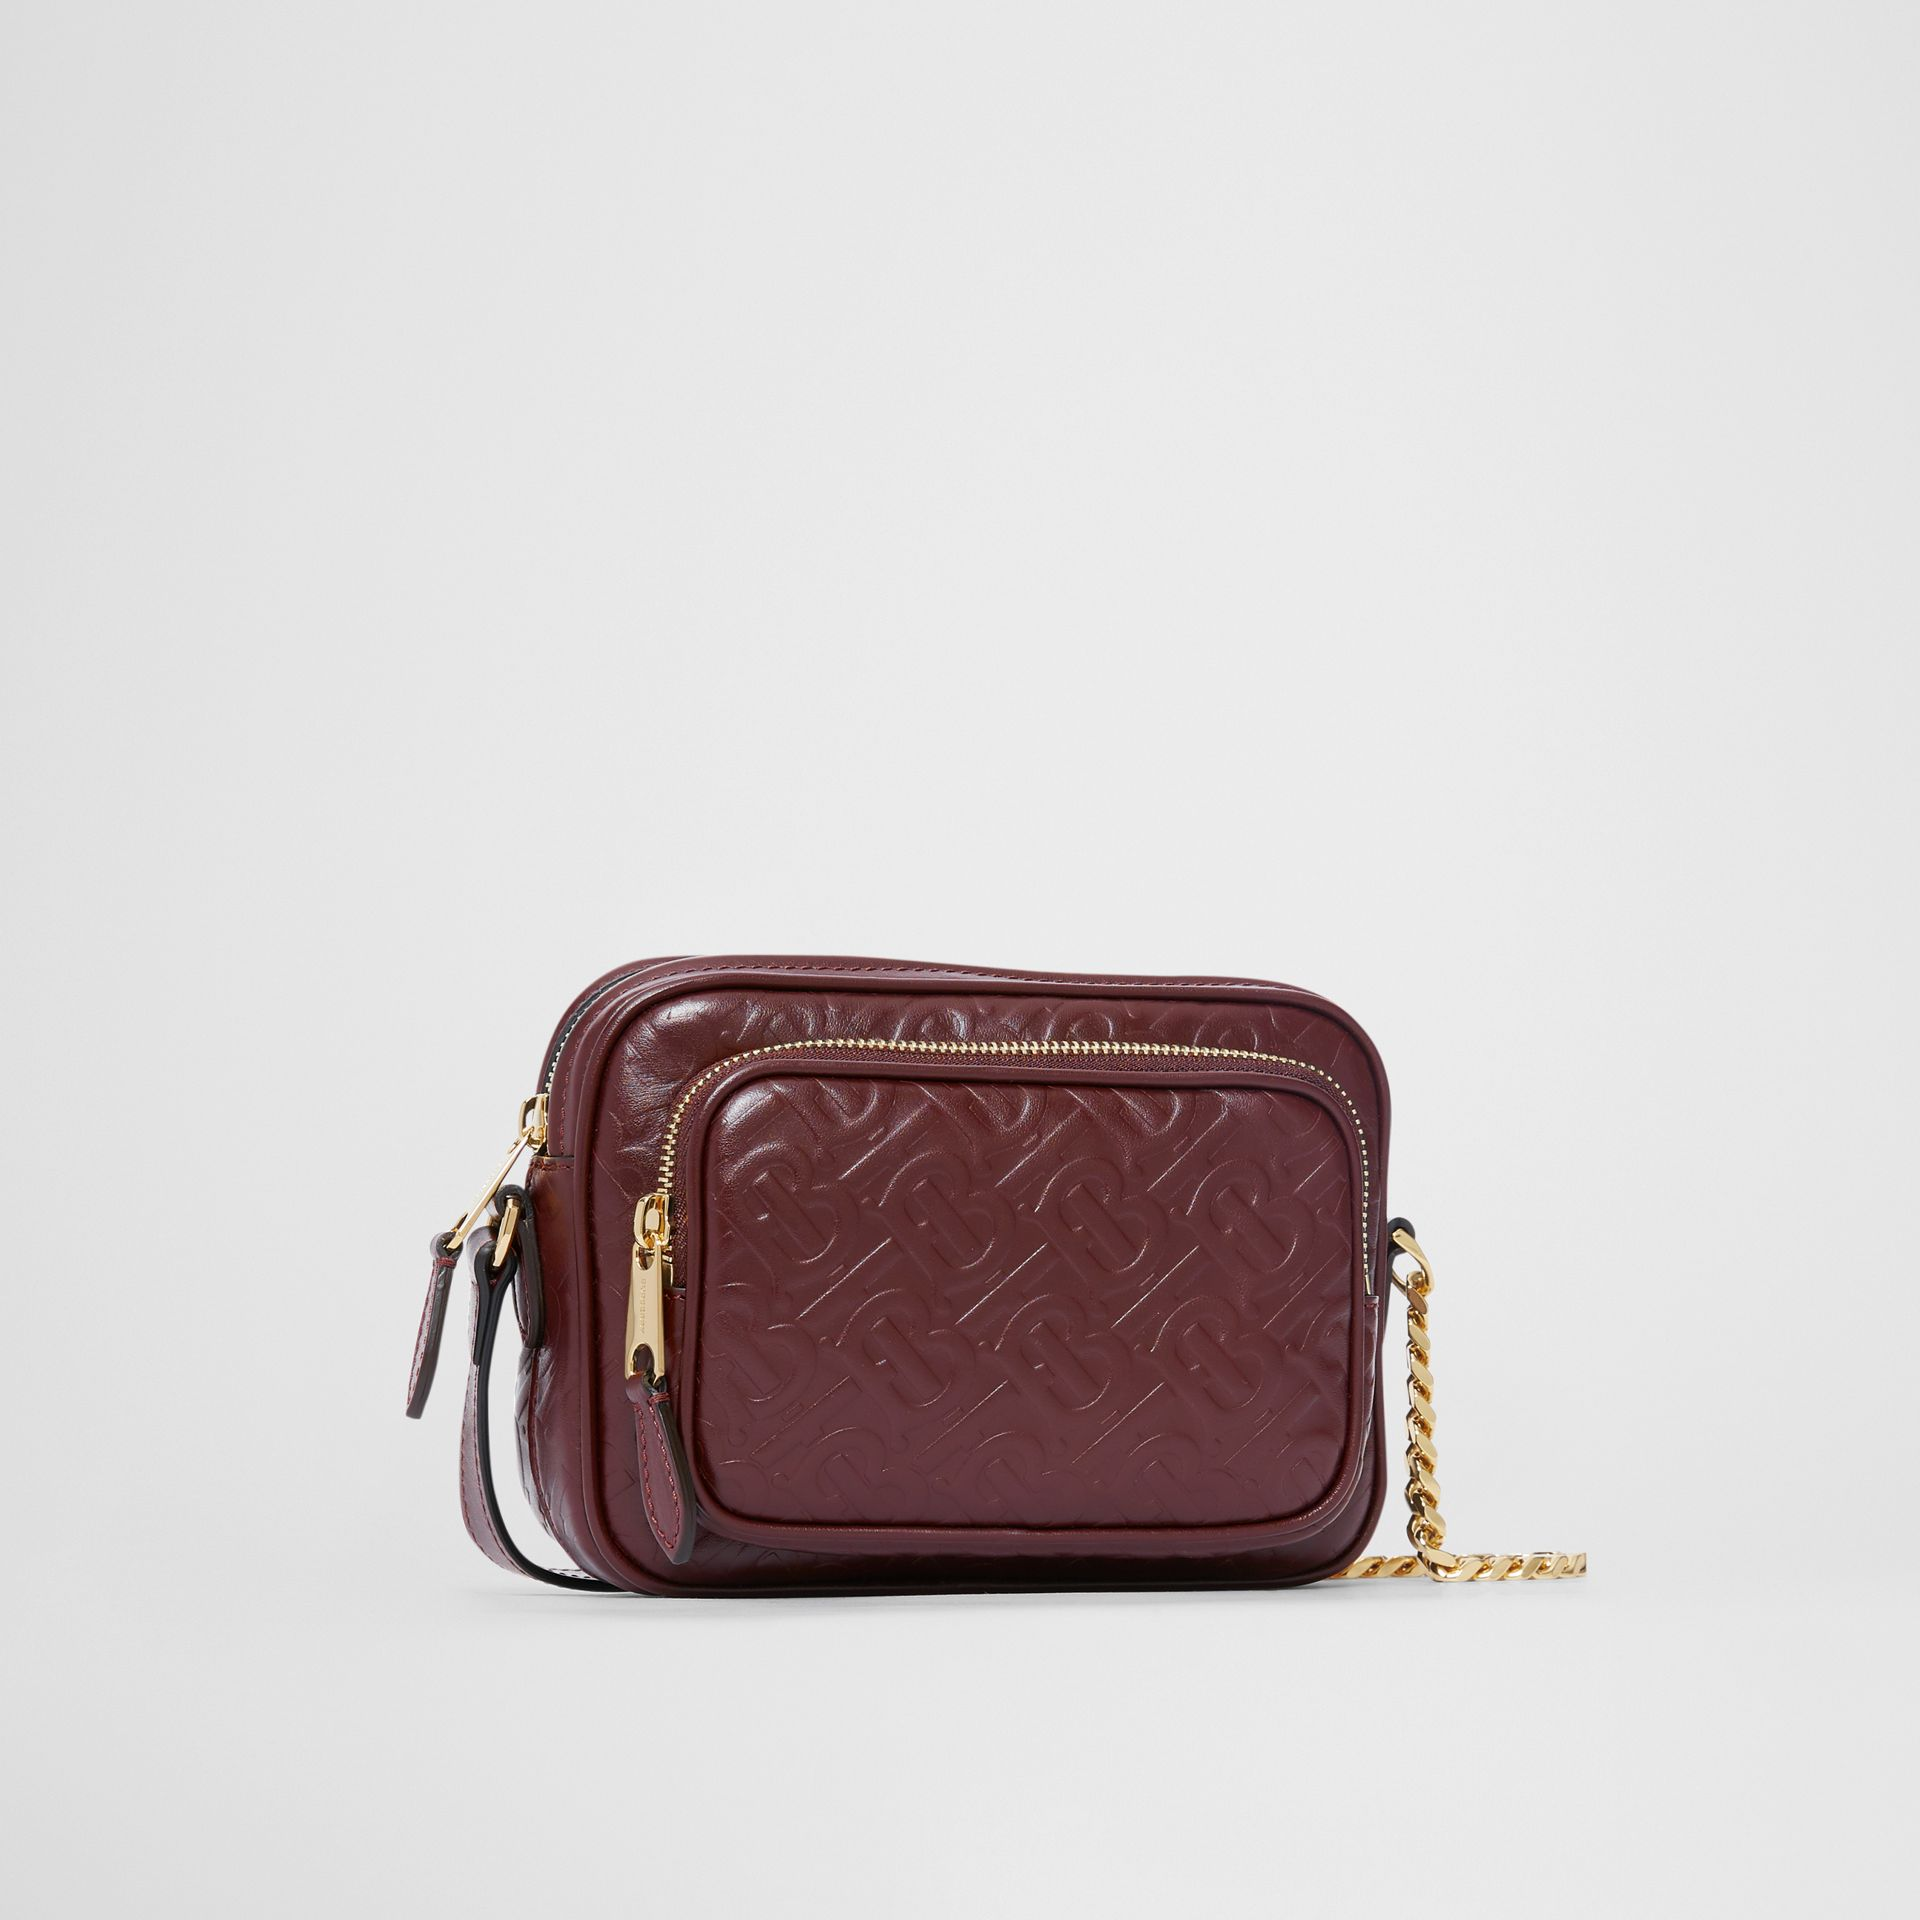 Monogram Leather Camera Bag in Dark Burgundy - Women | Burberry United States - gallery image 4